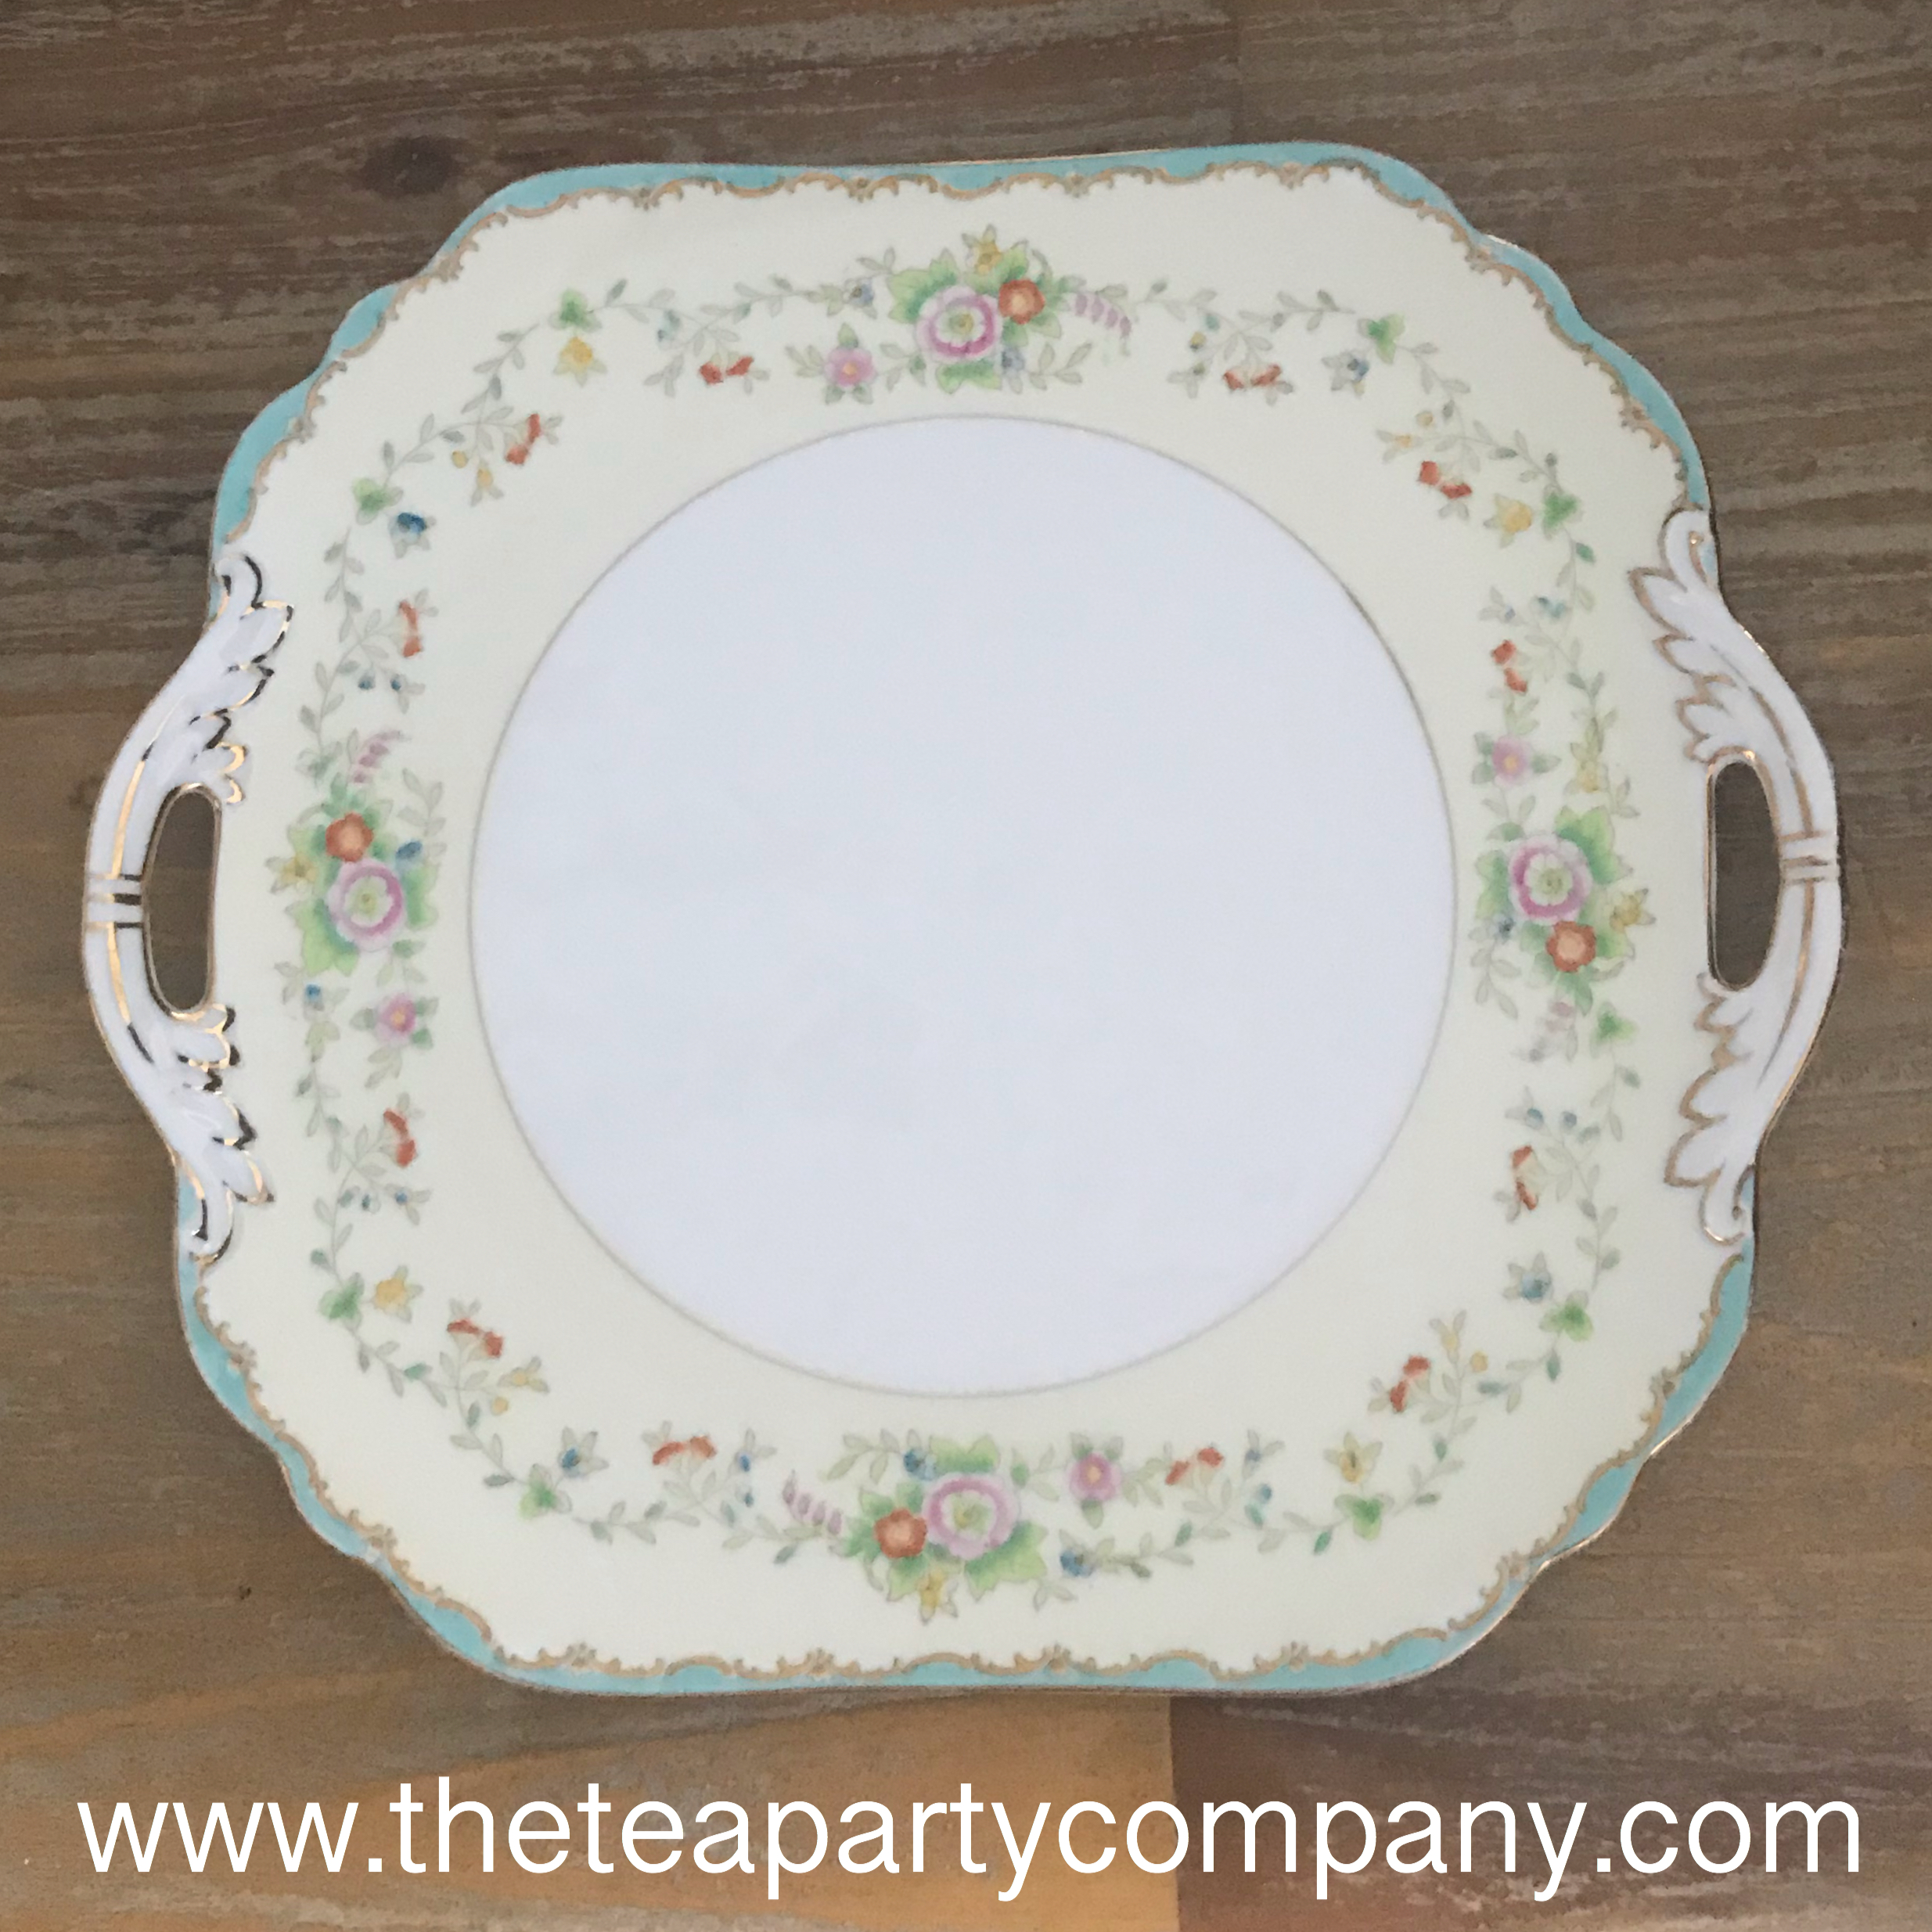 Exquisite Porcelain Trays 2 The Tea Part